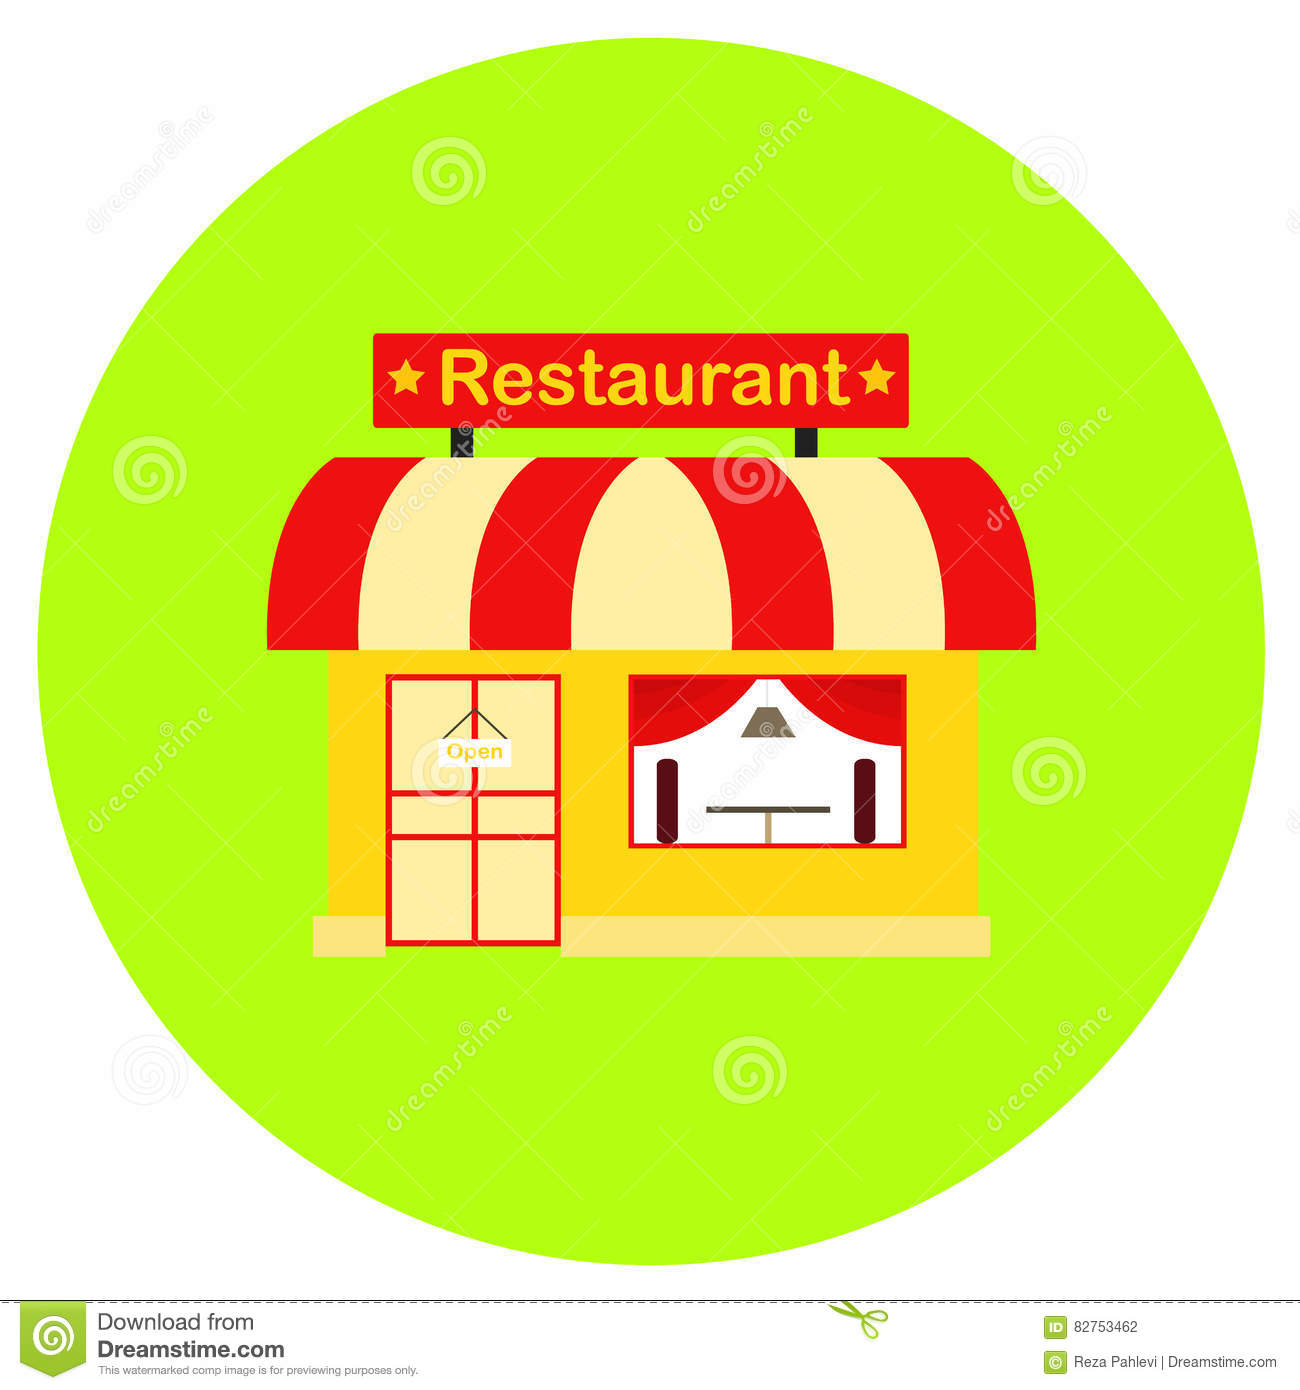 Restaurant icon in trendy flat style isolated on grey background restaurant icon in trendy flat style isolated on grey background building symbol for your design logo ui vector illustration biocorpaavc Image collections